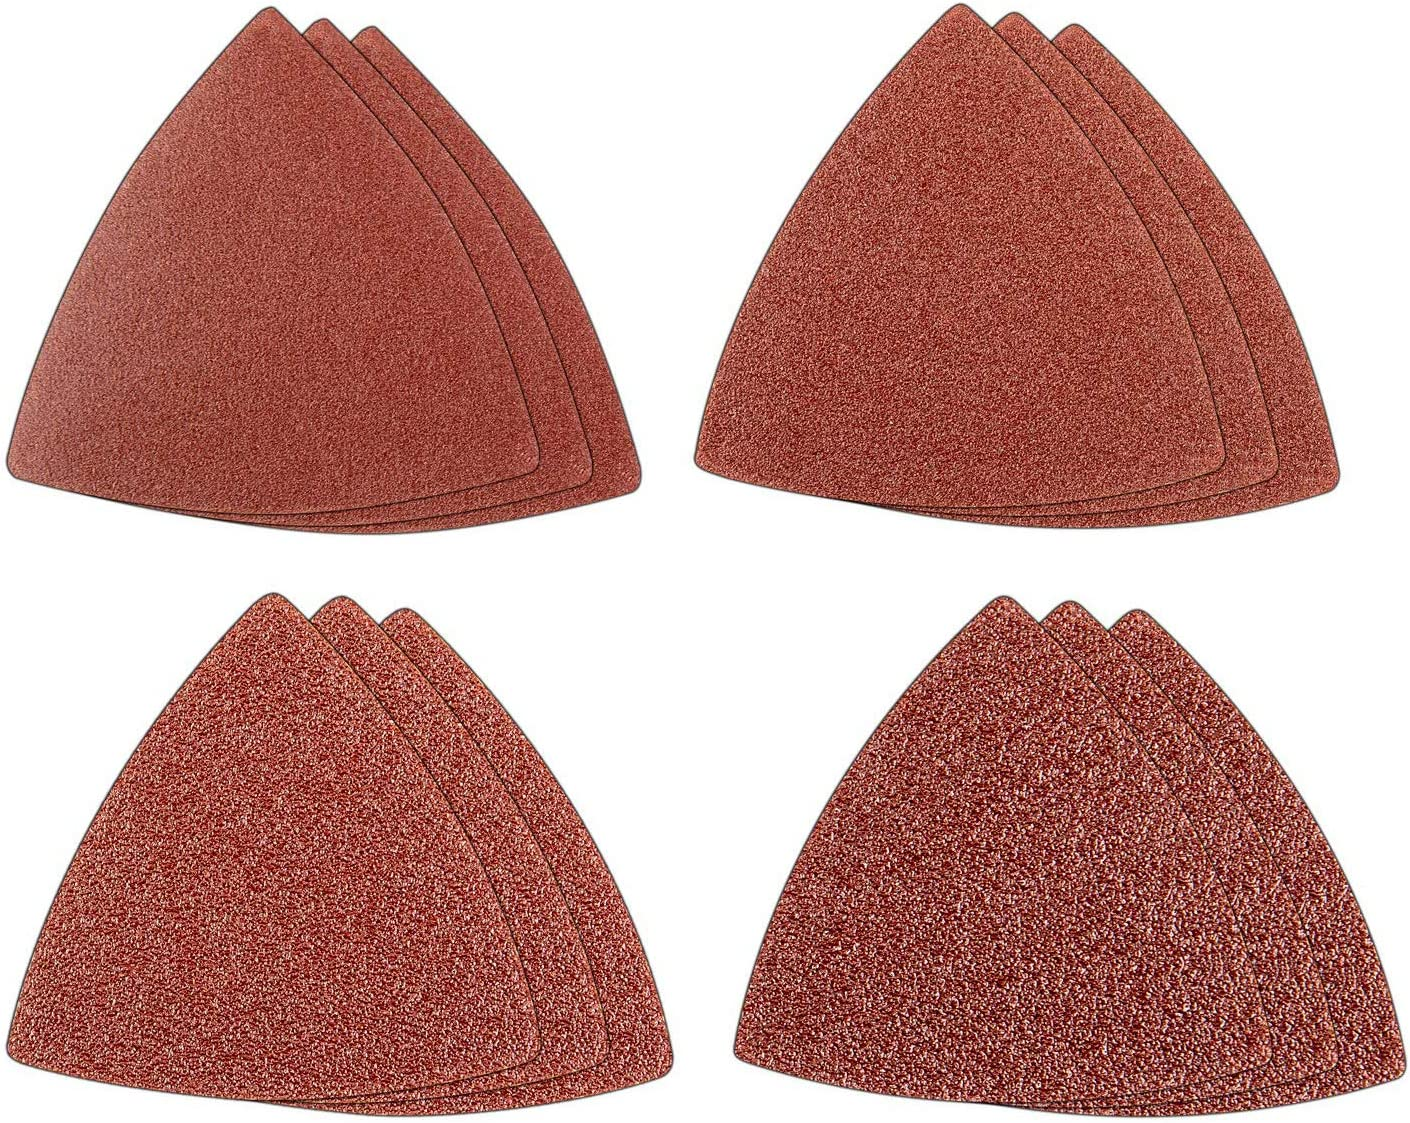 Genesis GAMT701 Universal 12-Piece Hook-and-Loop Sandpaper Assortment with 3 60-Grit, 3 80-Grit, 3 120-Grit, and 3 240-Grit